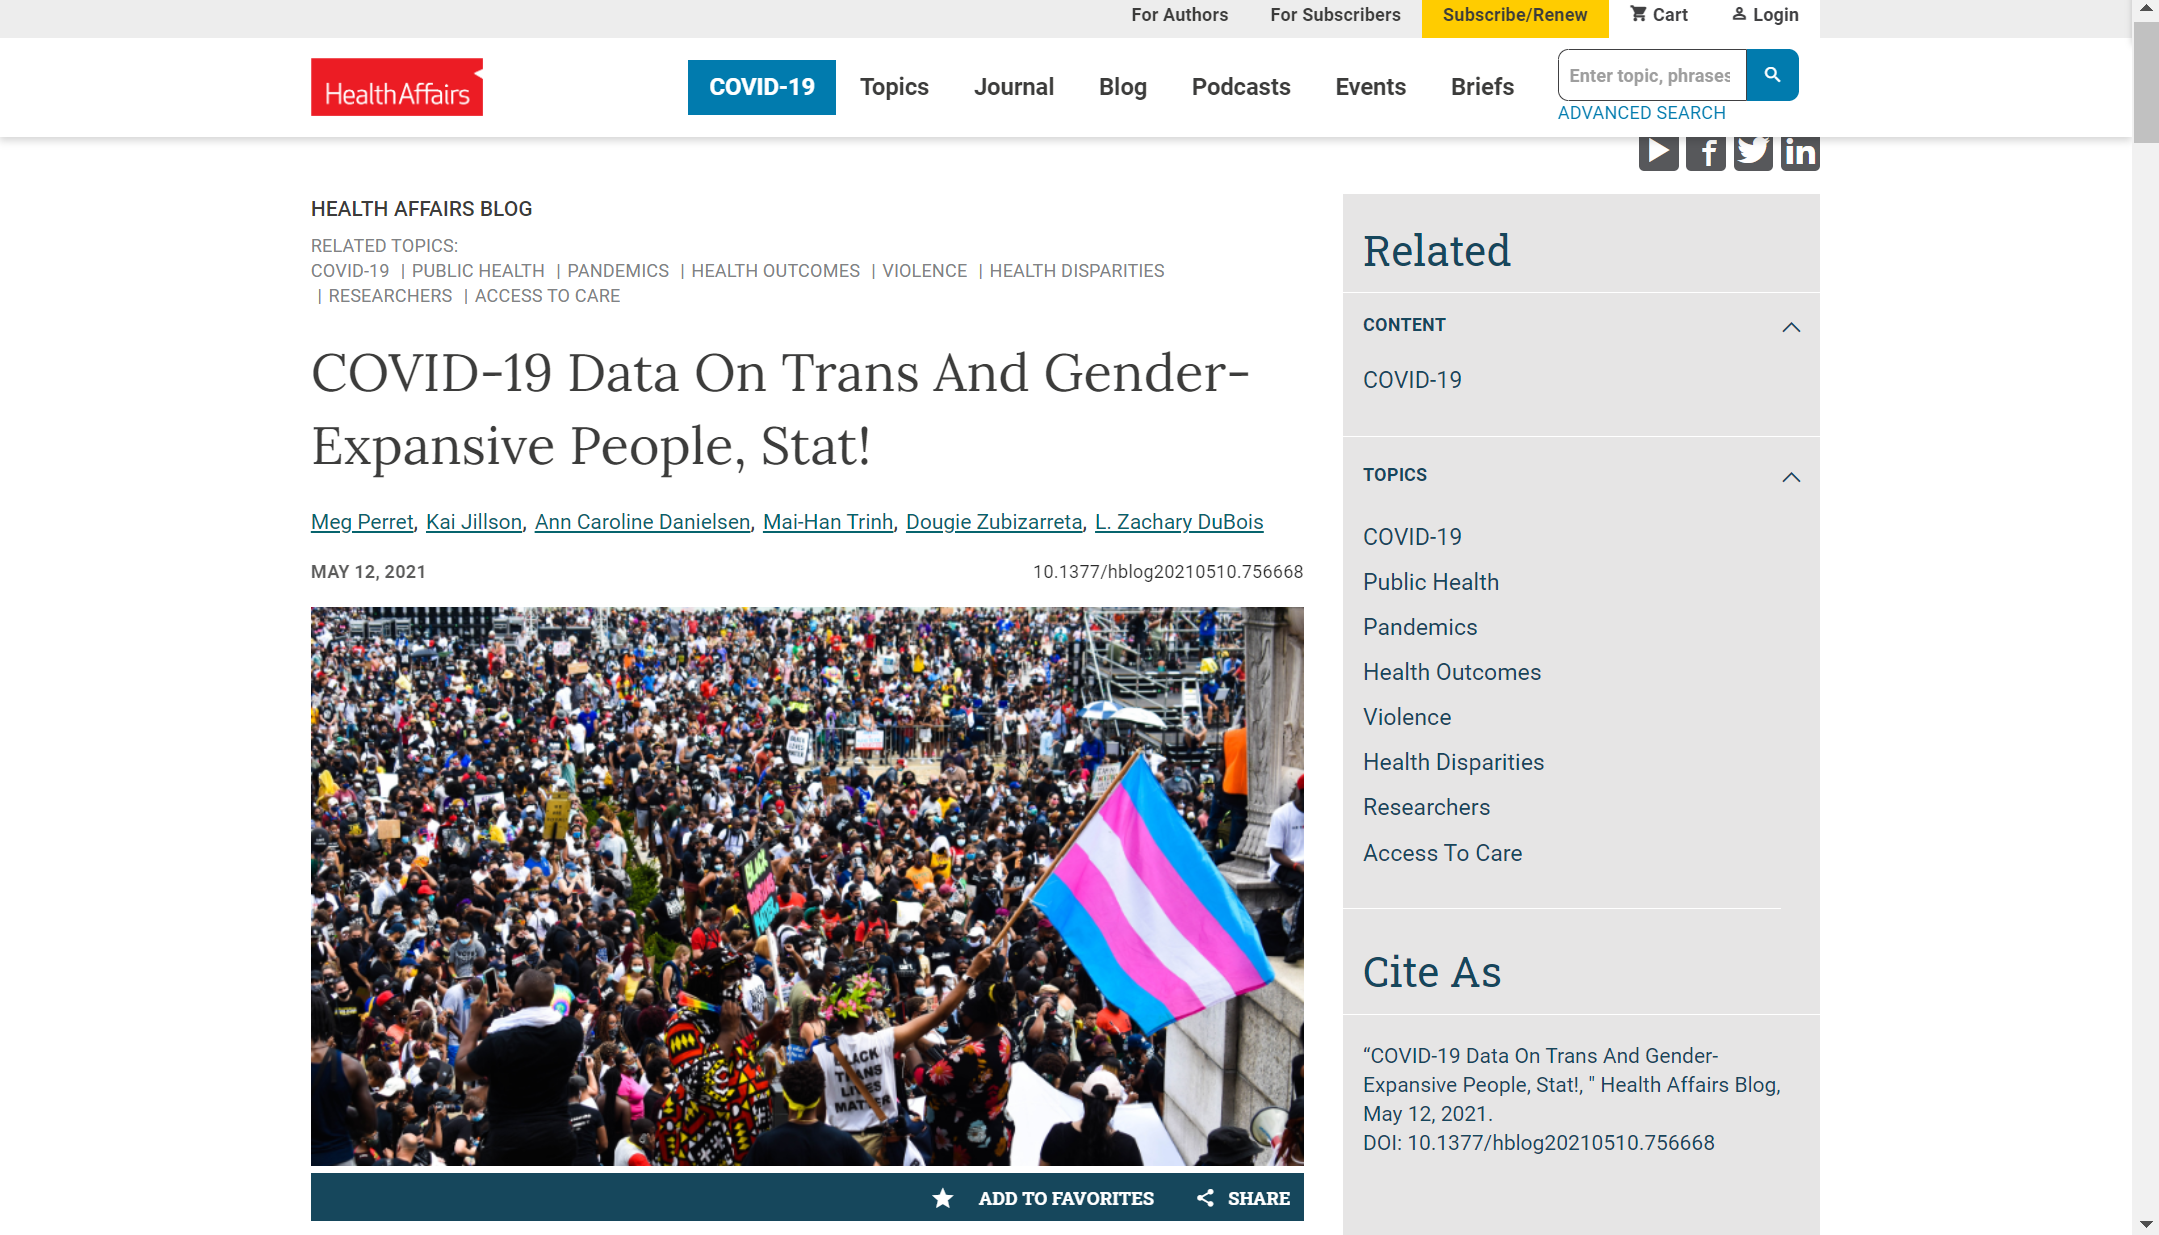 COVID-19 Data On Trans And Gender-Expansive People, Stat!